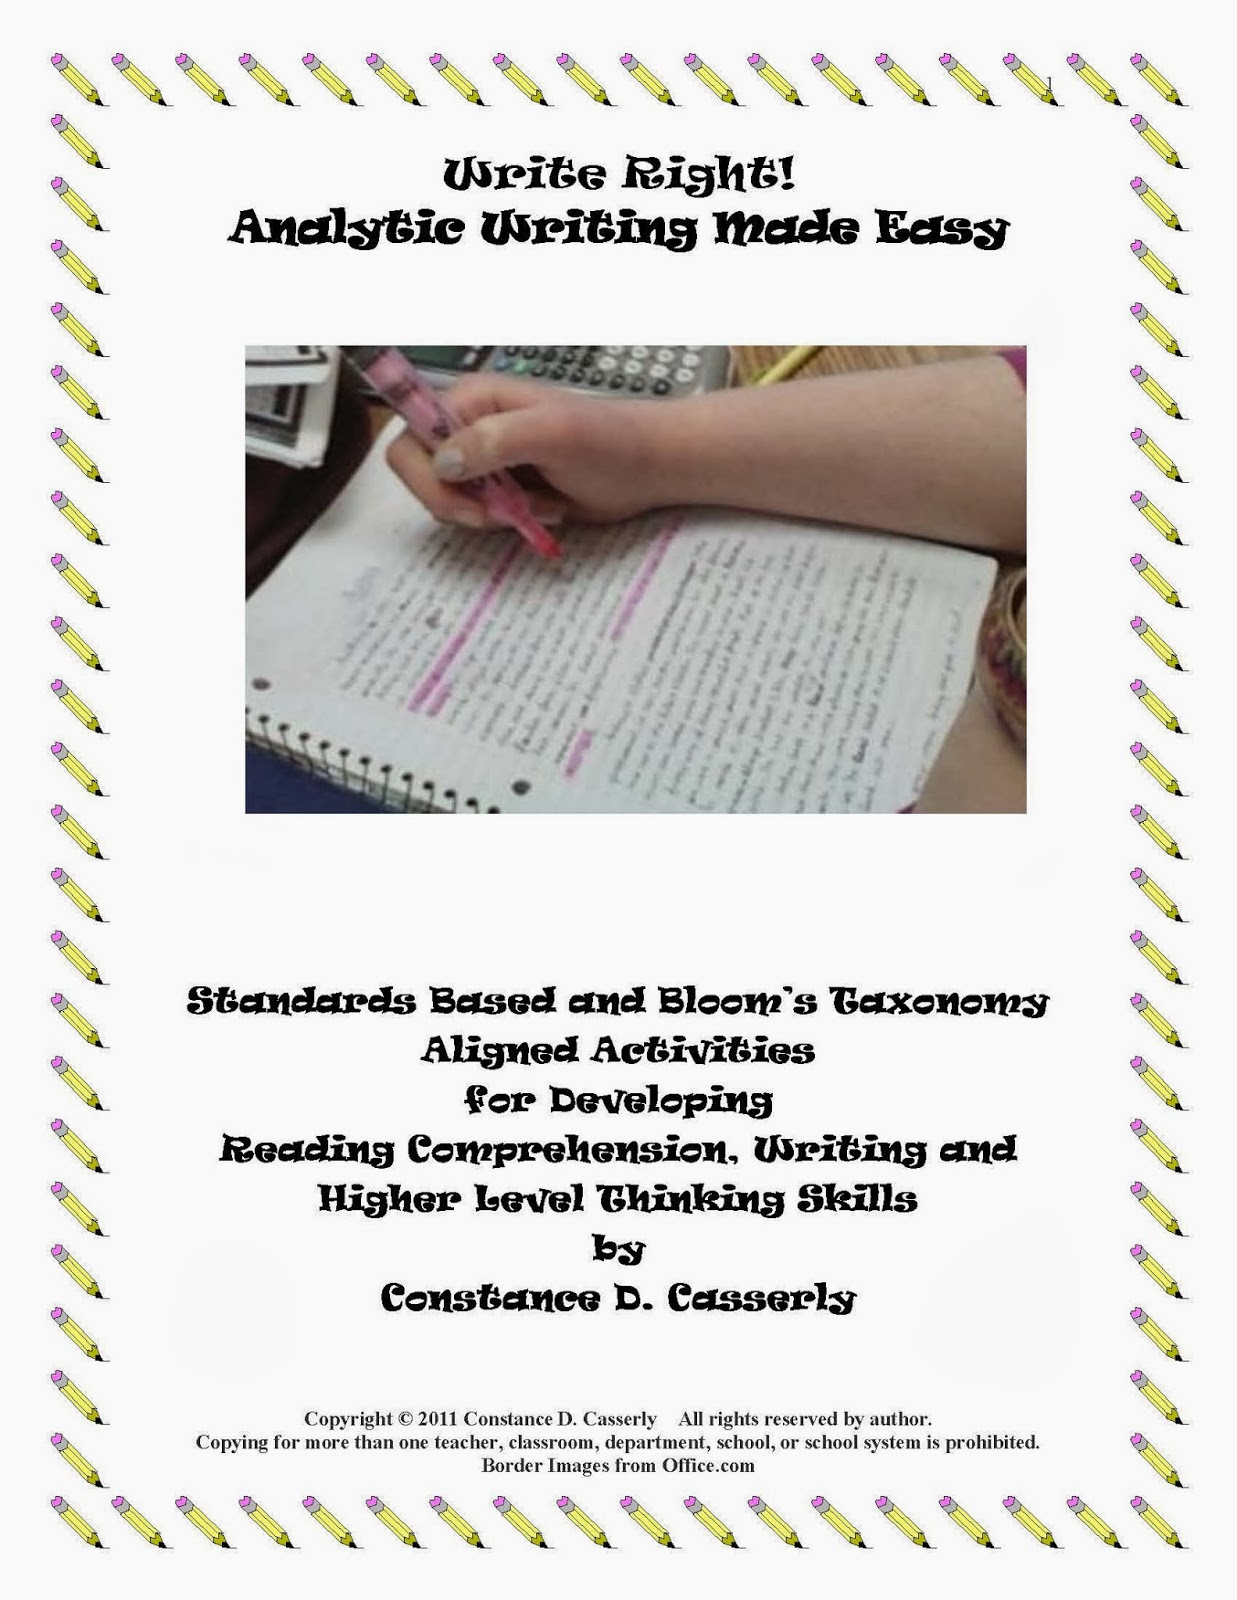 Write Right! Analytic Writing Made Easy cover